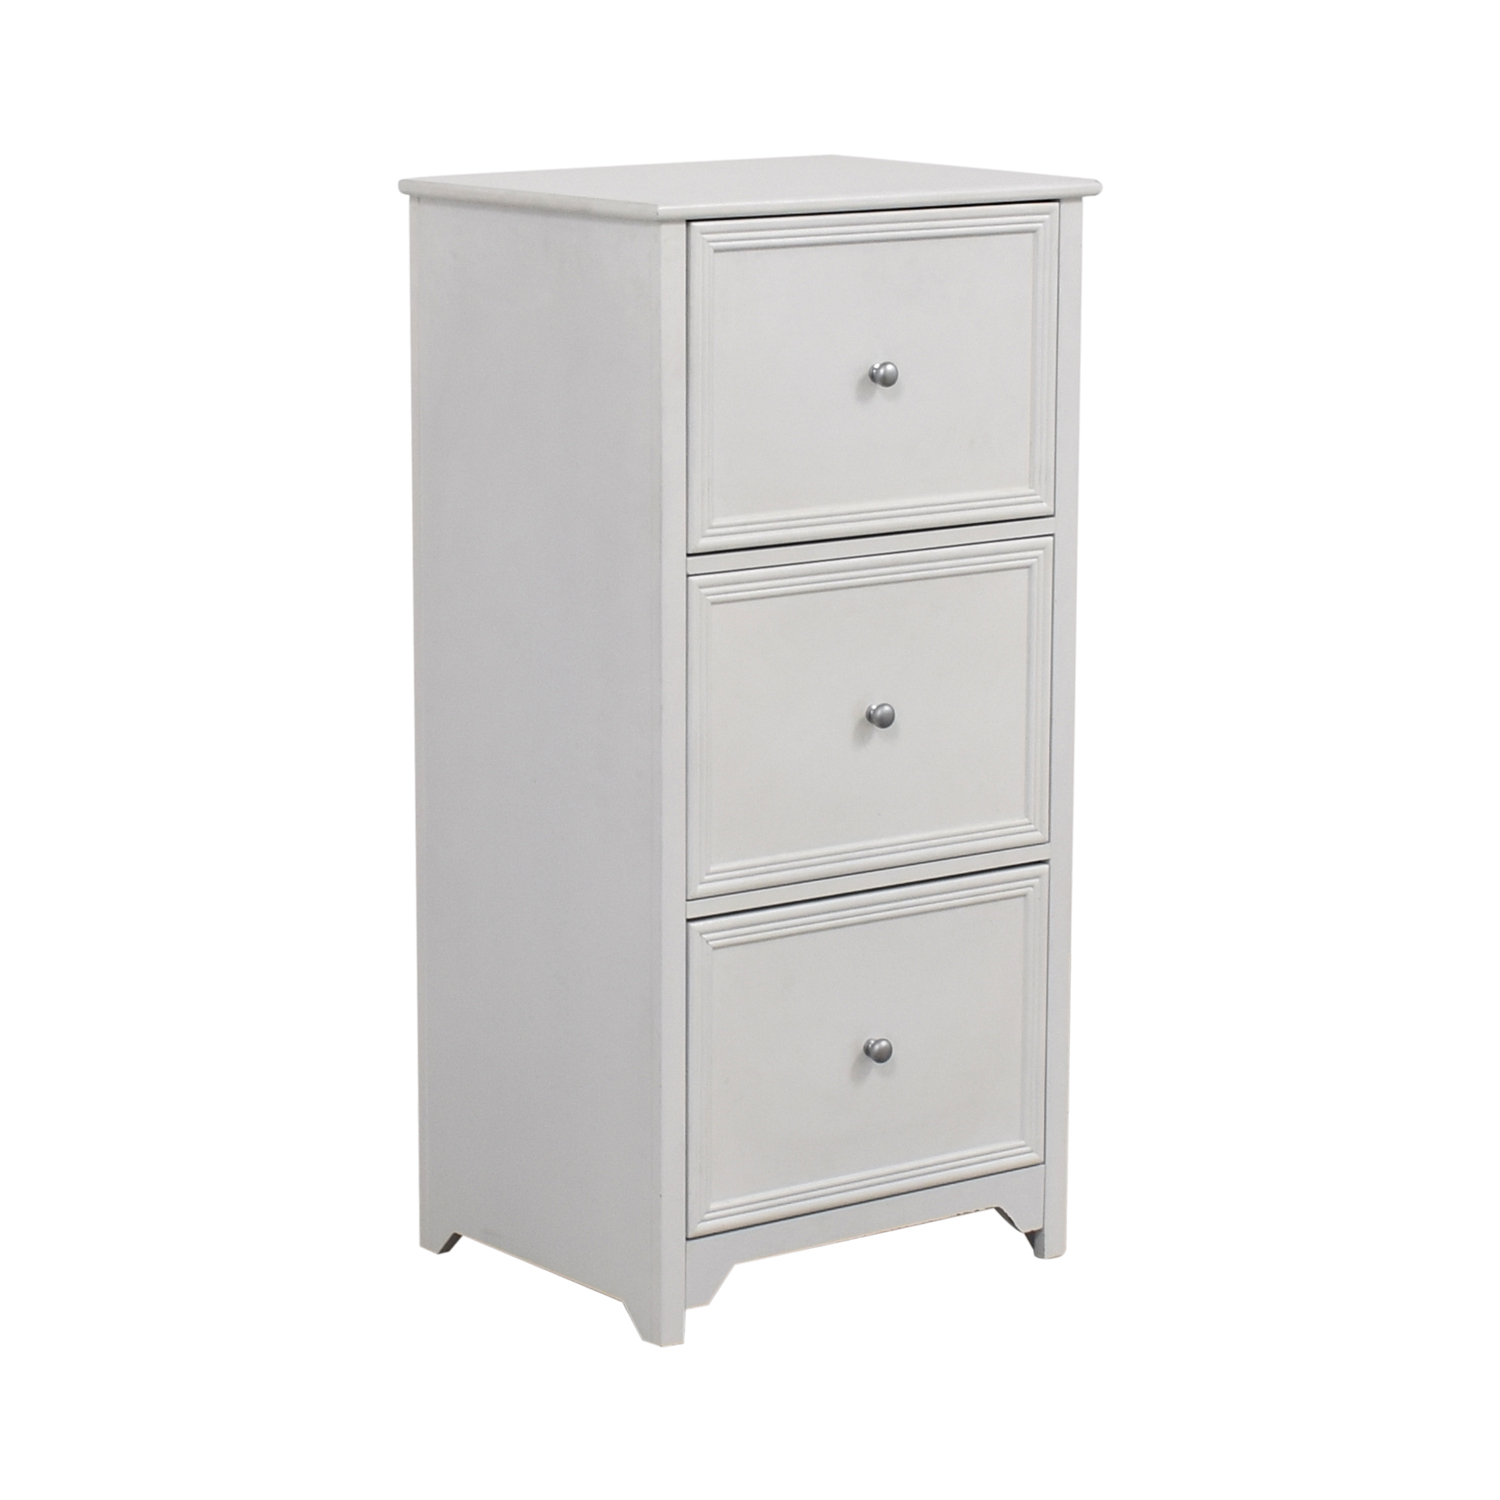 White Three-Drawer Filing Cabinet price